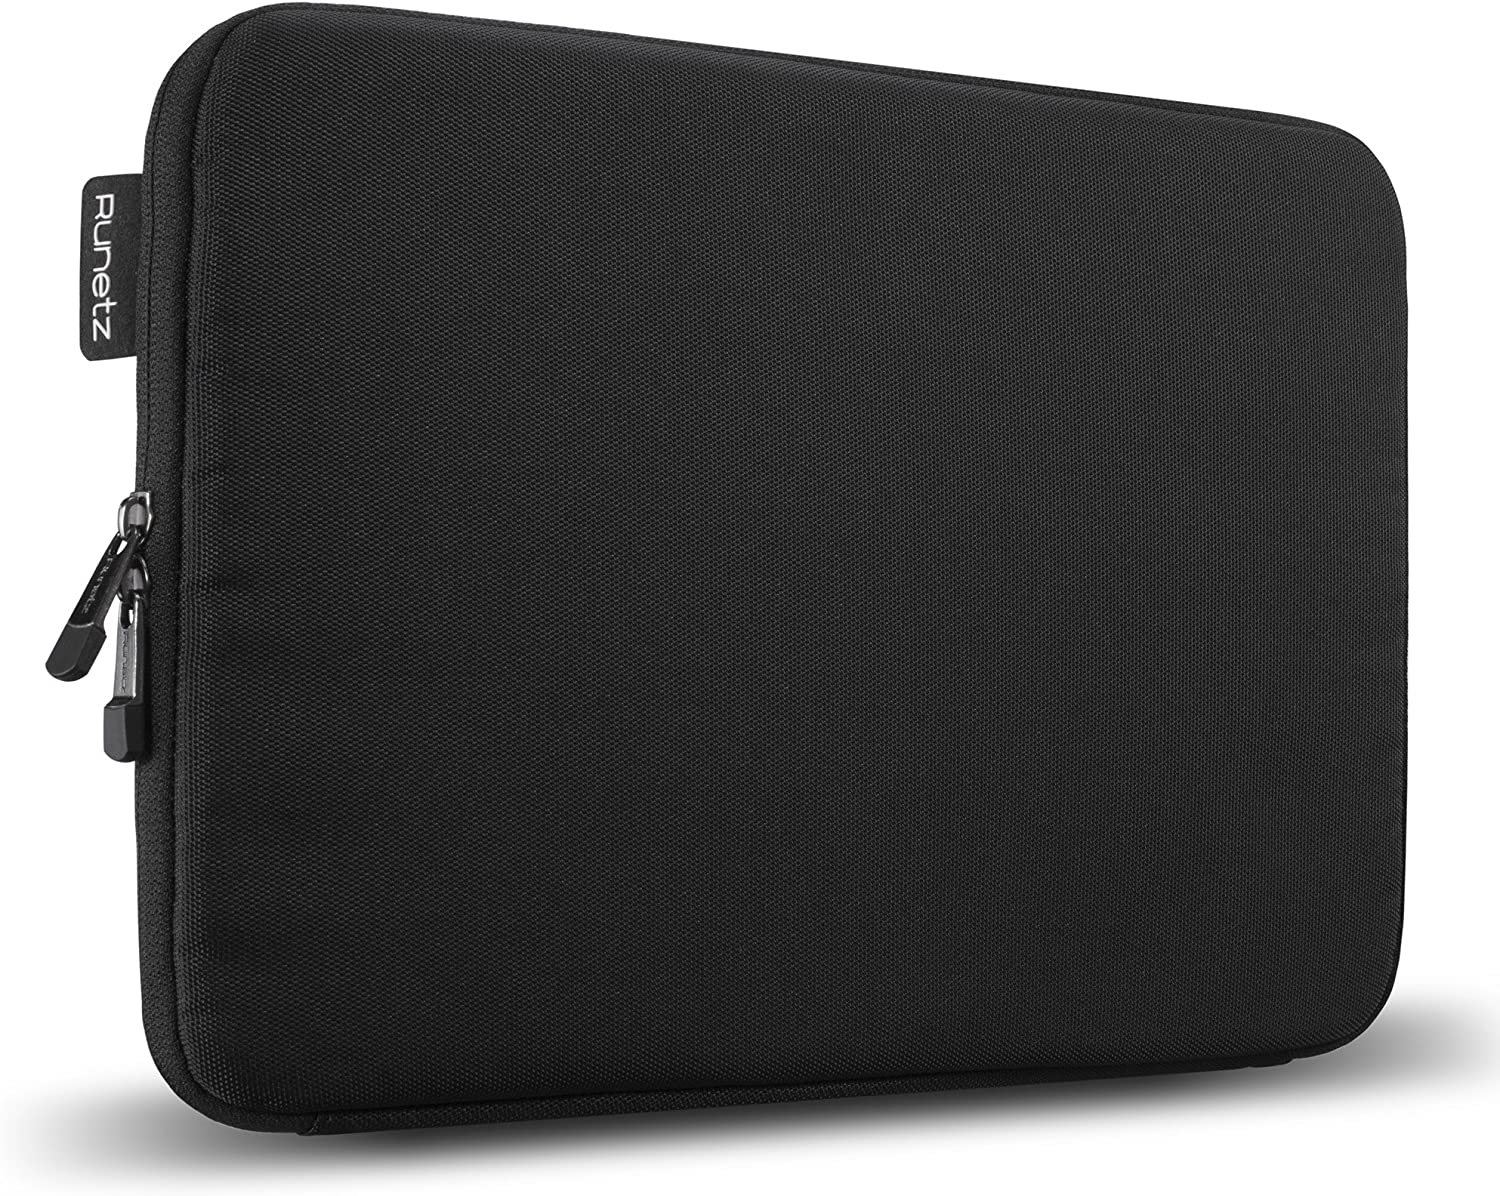 Runetz - MacBook 12 inch Sleeve Soft Laptop Sleeve 11 inch MacBook Air 11.6 inch Sleeve Notebook Computer Bag Protective Case Cover with Zipper - Black